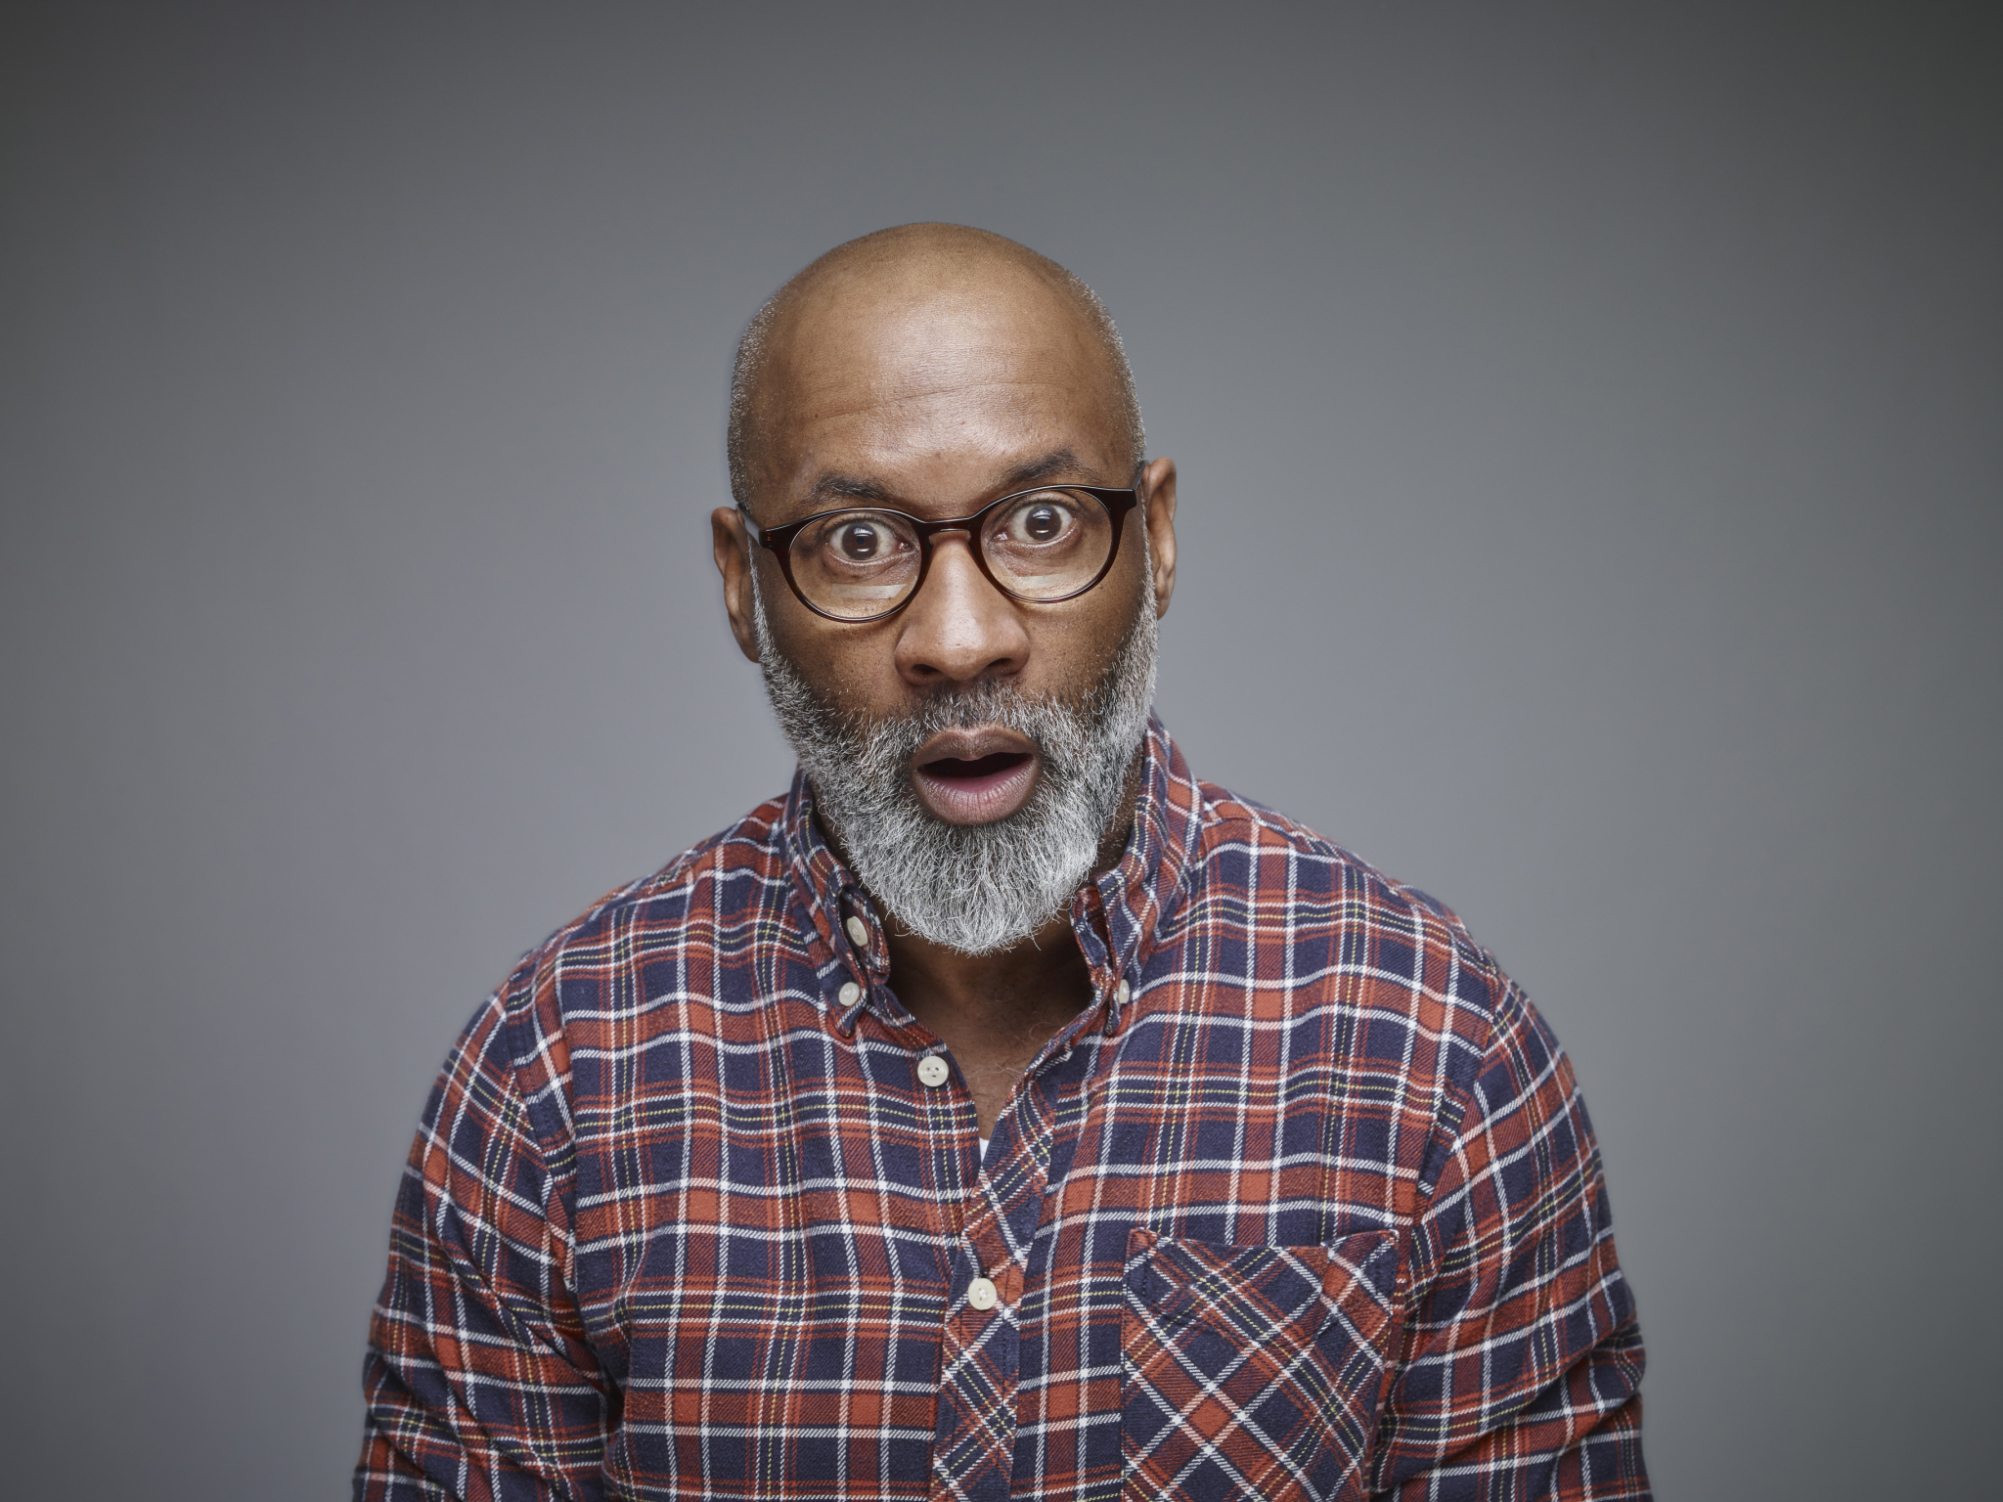 Portrait of astonished man wearing spectacles and checked shirt in front of grey background